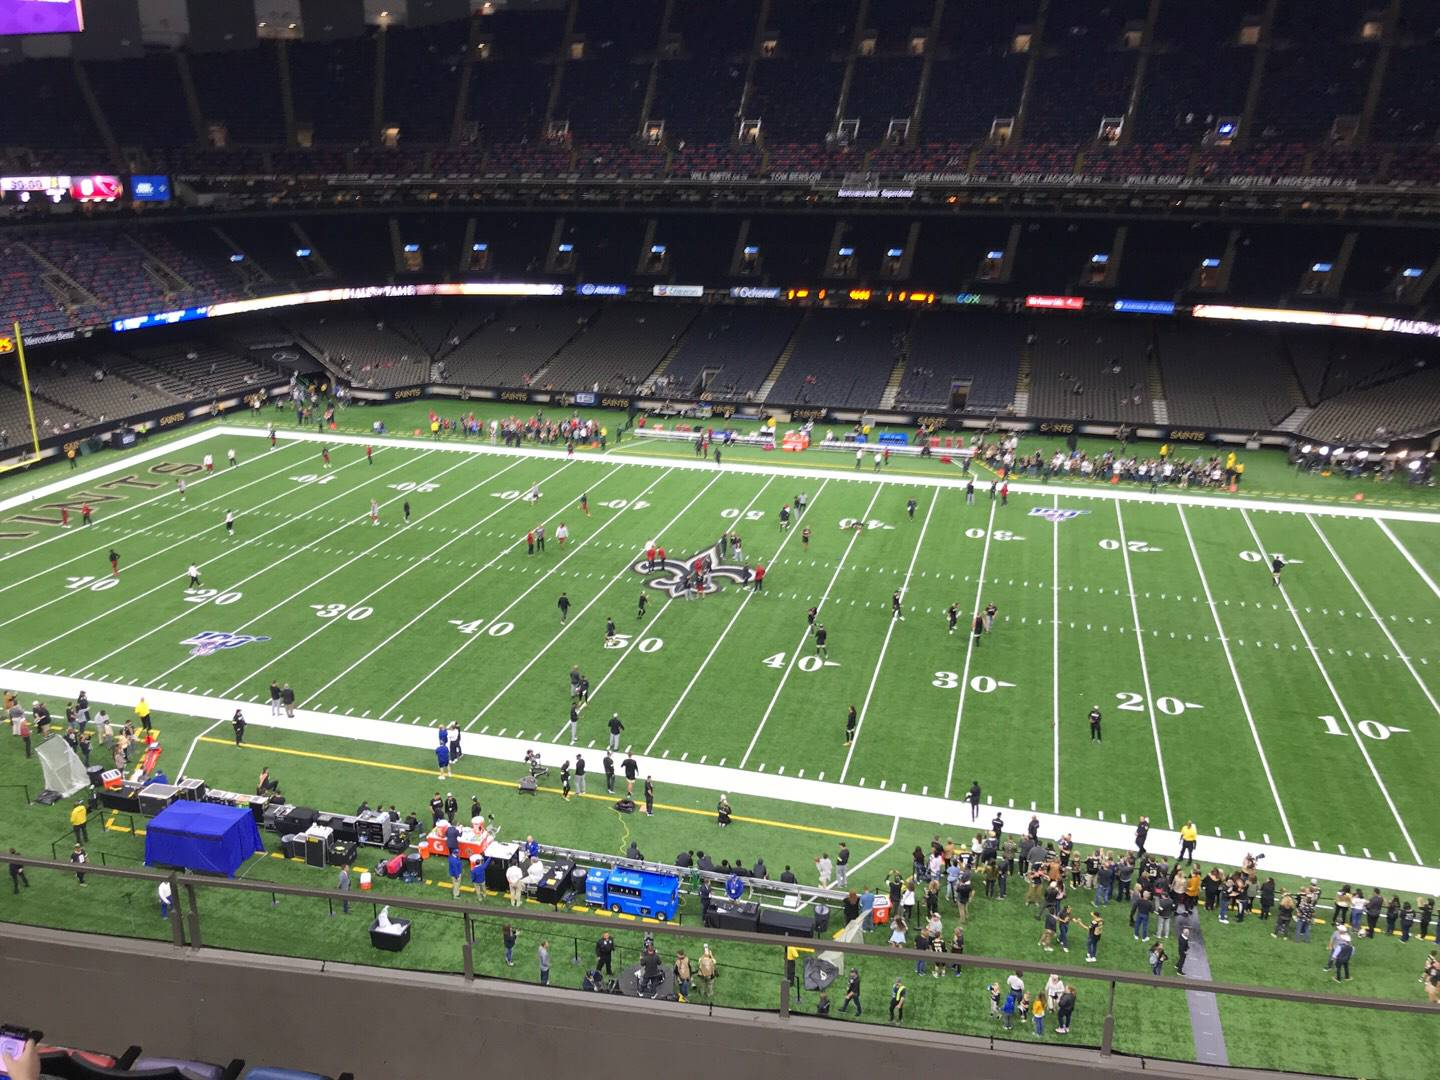 Mercedes-Benz Superdome Section 638 Row 6 Seat 5